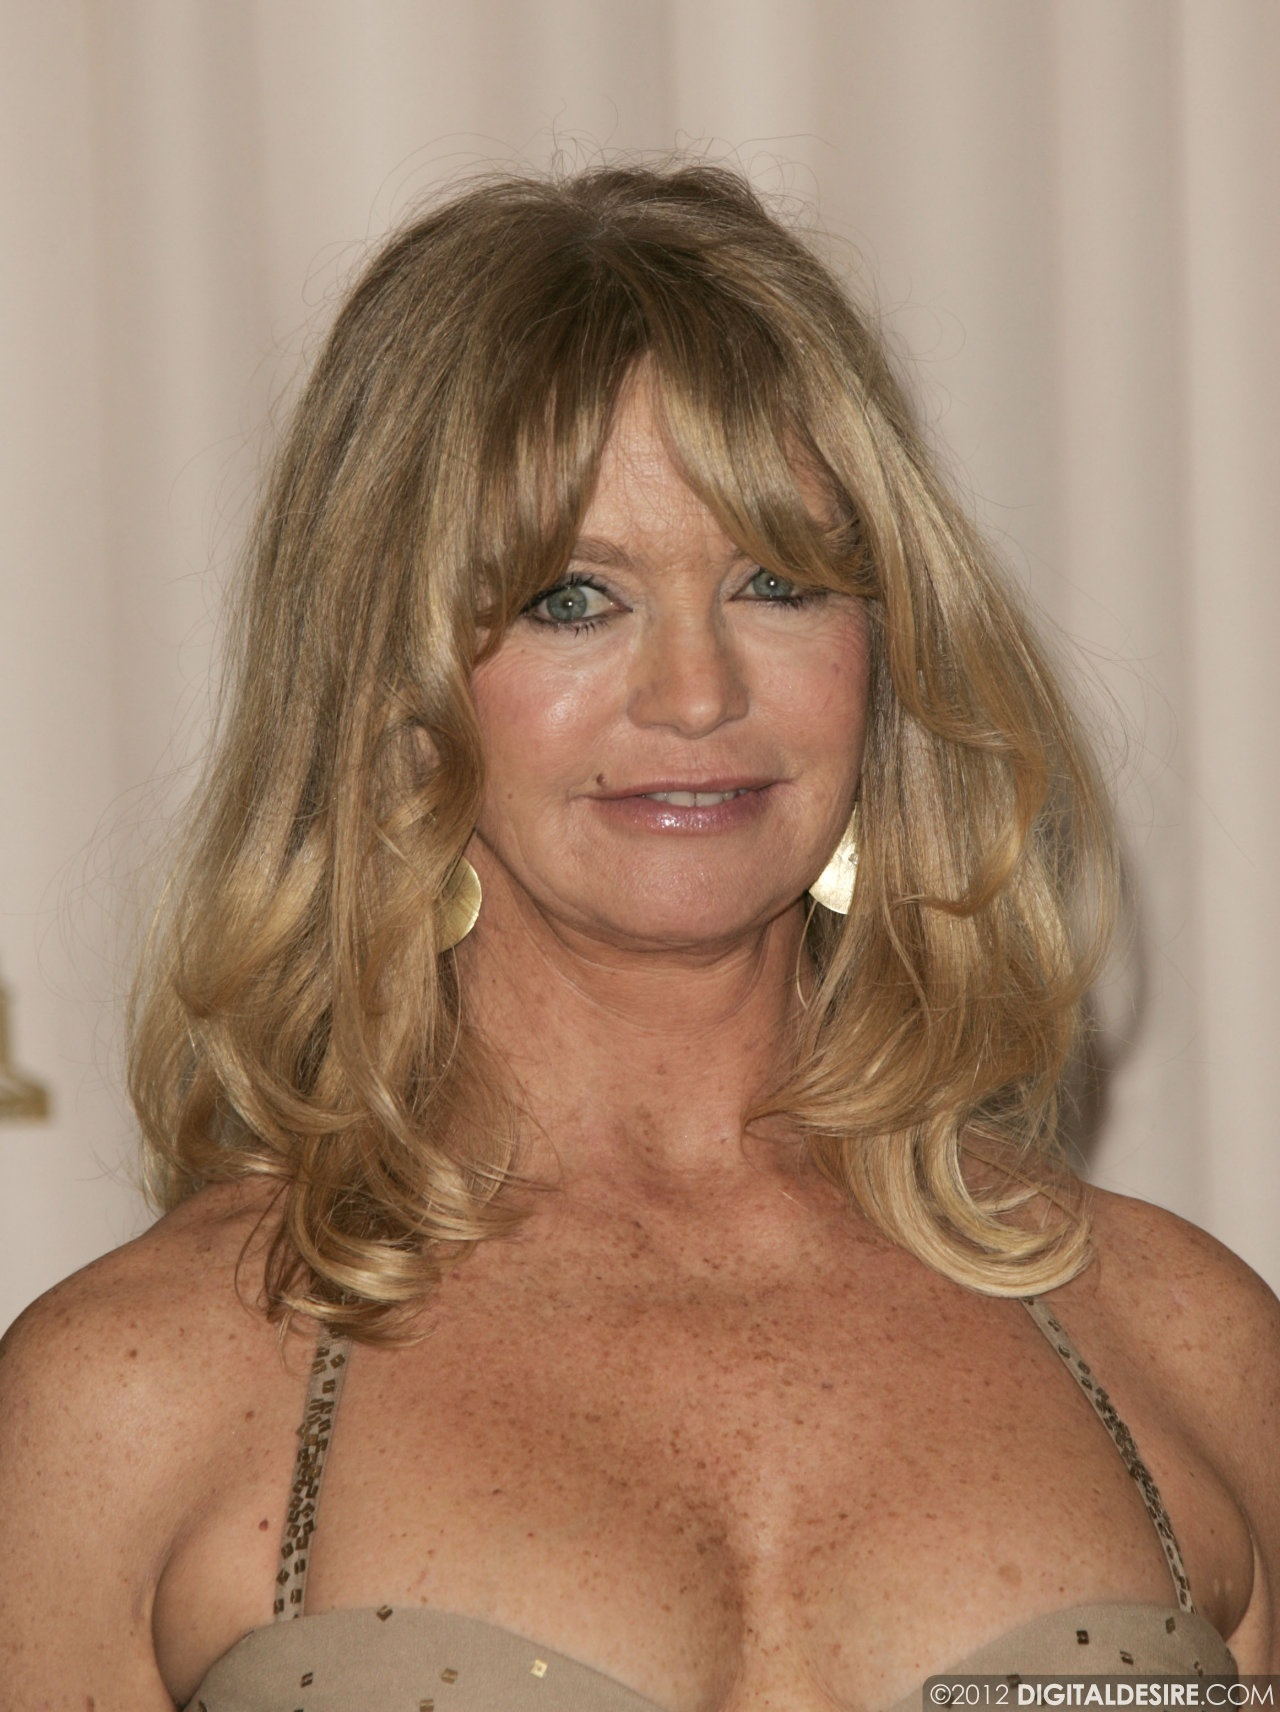 goldie hawn wallpapers high quality | download free